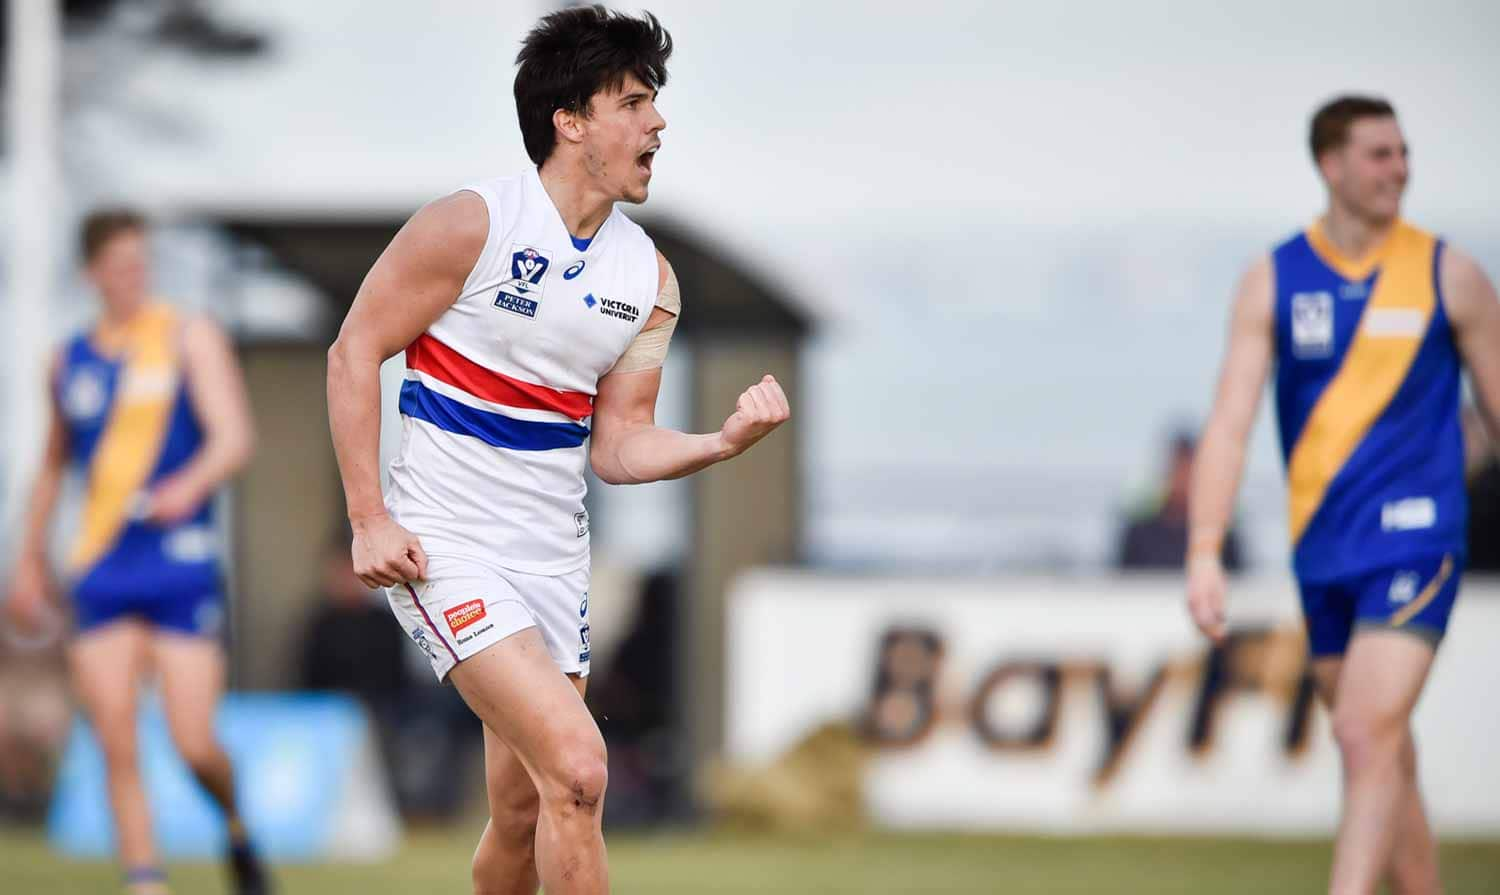 westernbulldogs.com.au takes a look at this year's key VFL stats leaders (Photo: Liz Vagg/Western Bulldogs) - Western Bulldogs